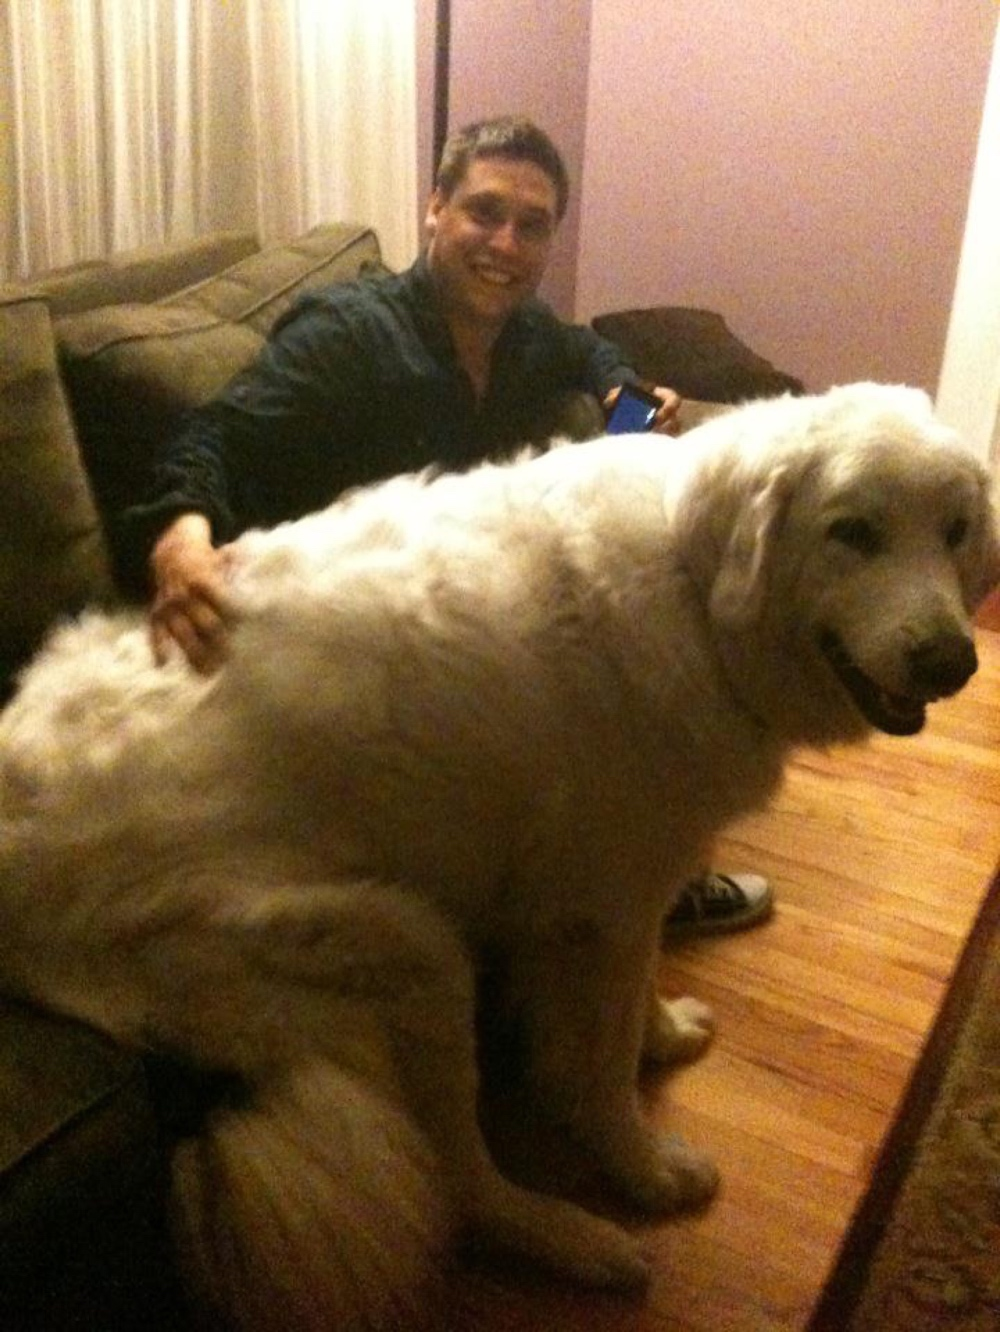 Giant dog on couch